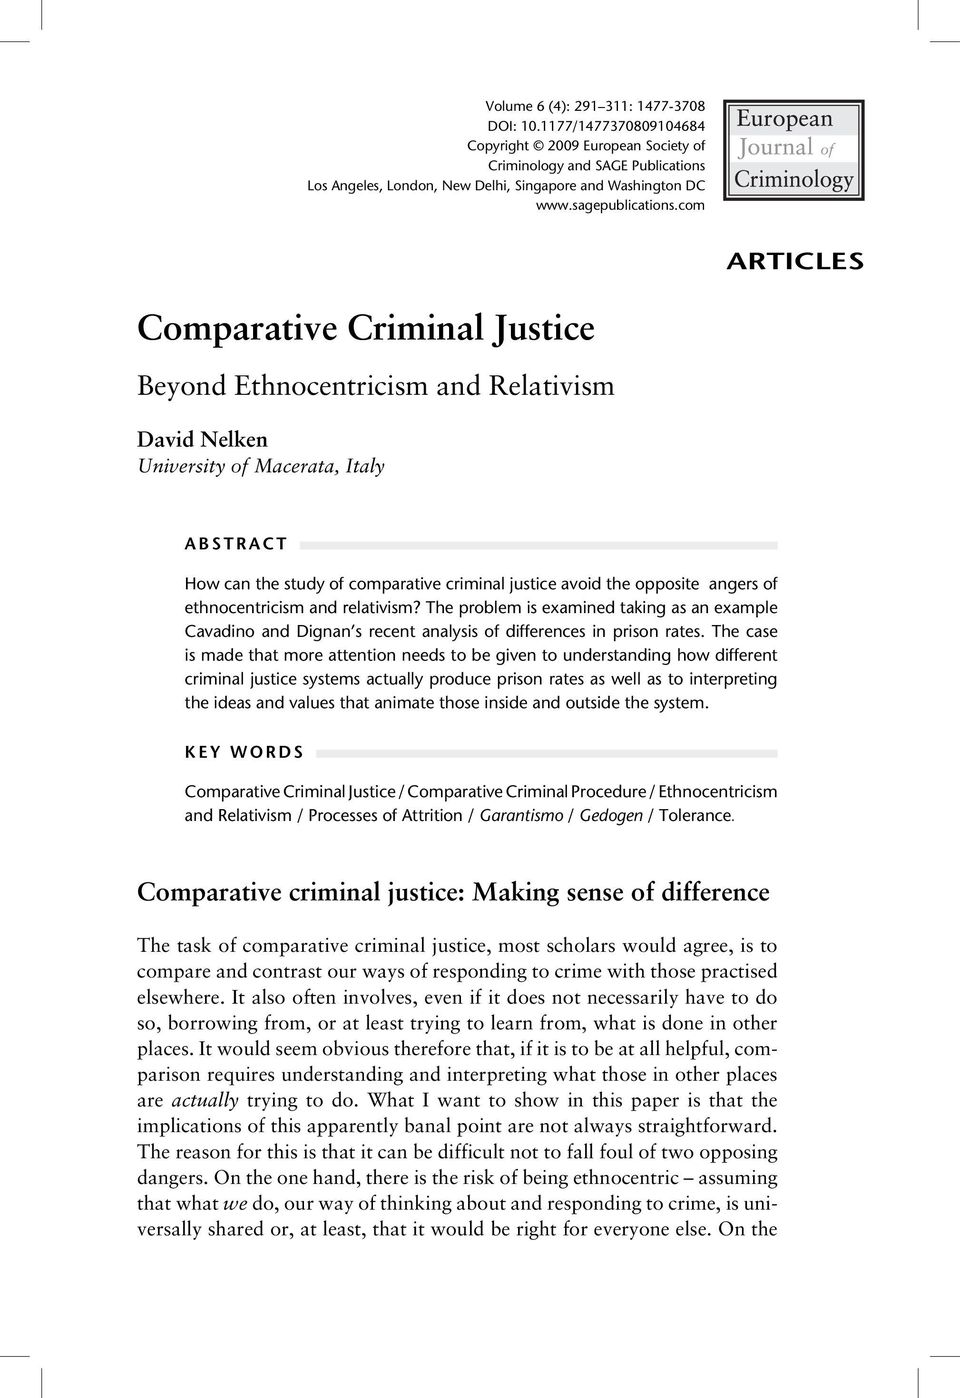 com ARTICLES Comparative Criminal Justice Beyond Ethnocentricism and Relativism David Nelken University of Macerata, Italy ABSTRACT How can the study of comparative criminal justice avoid the